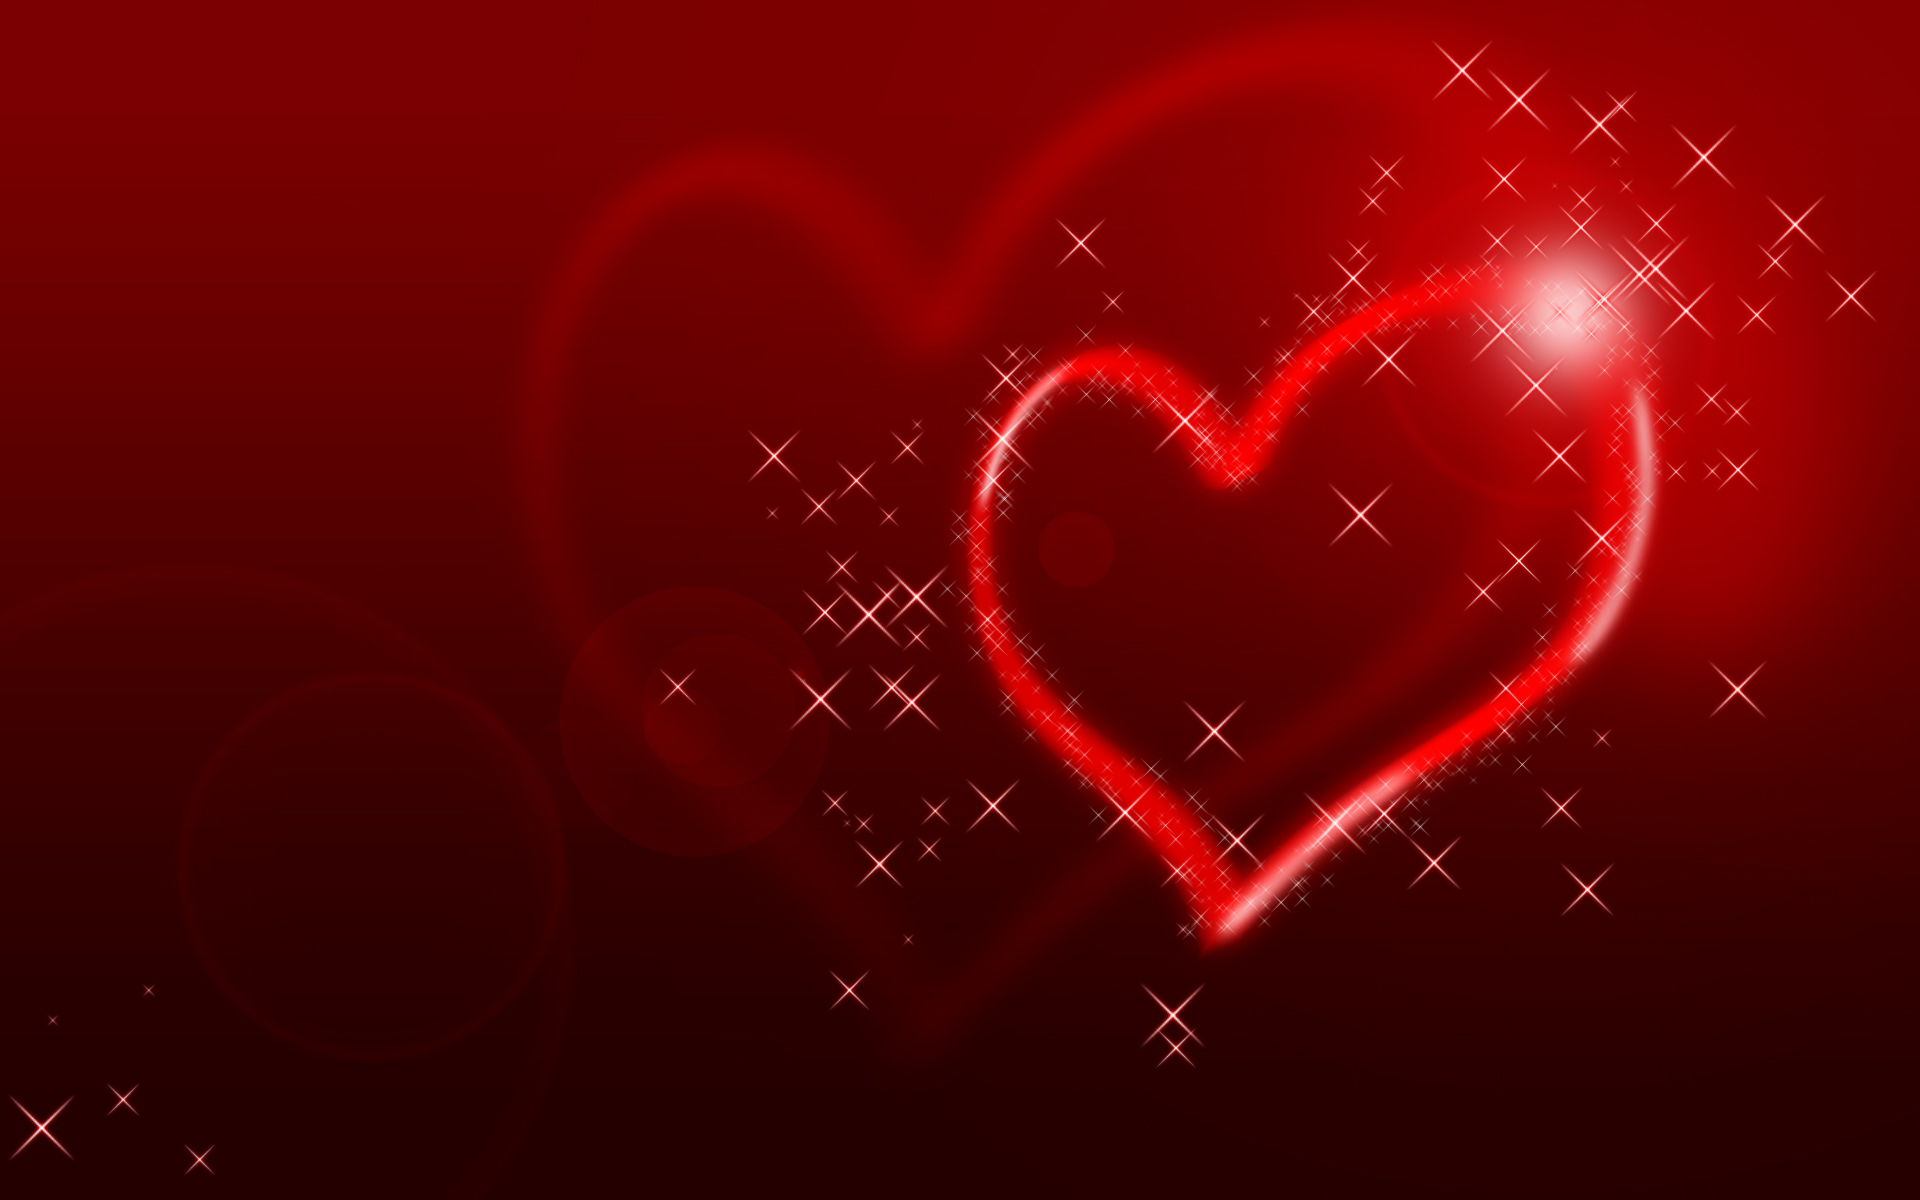 Glittering Heart Wallpapers HD Wallpapers 1920x1200